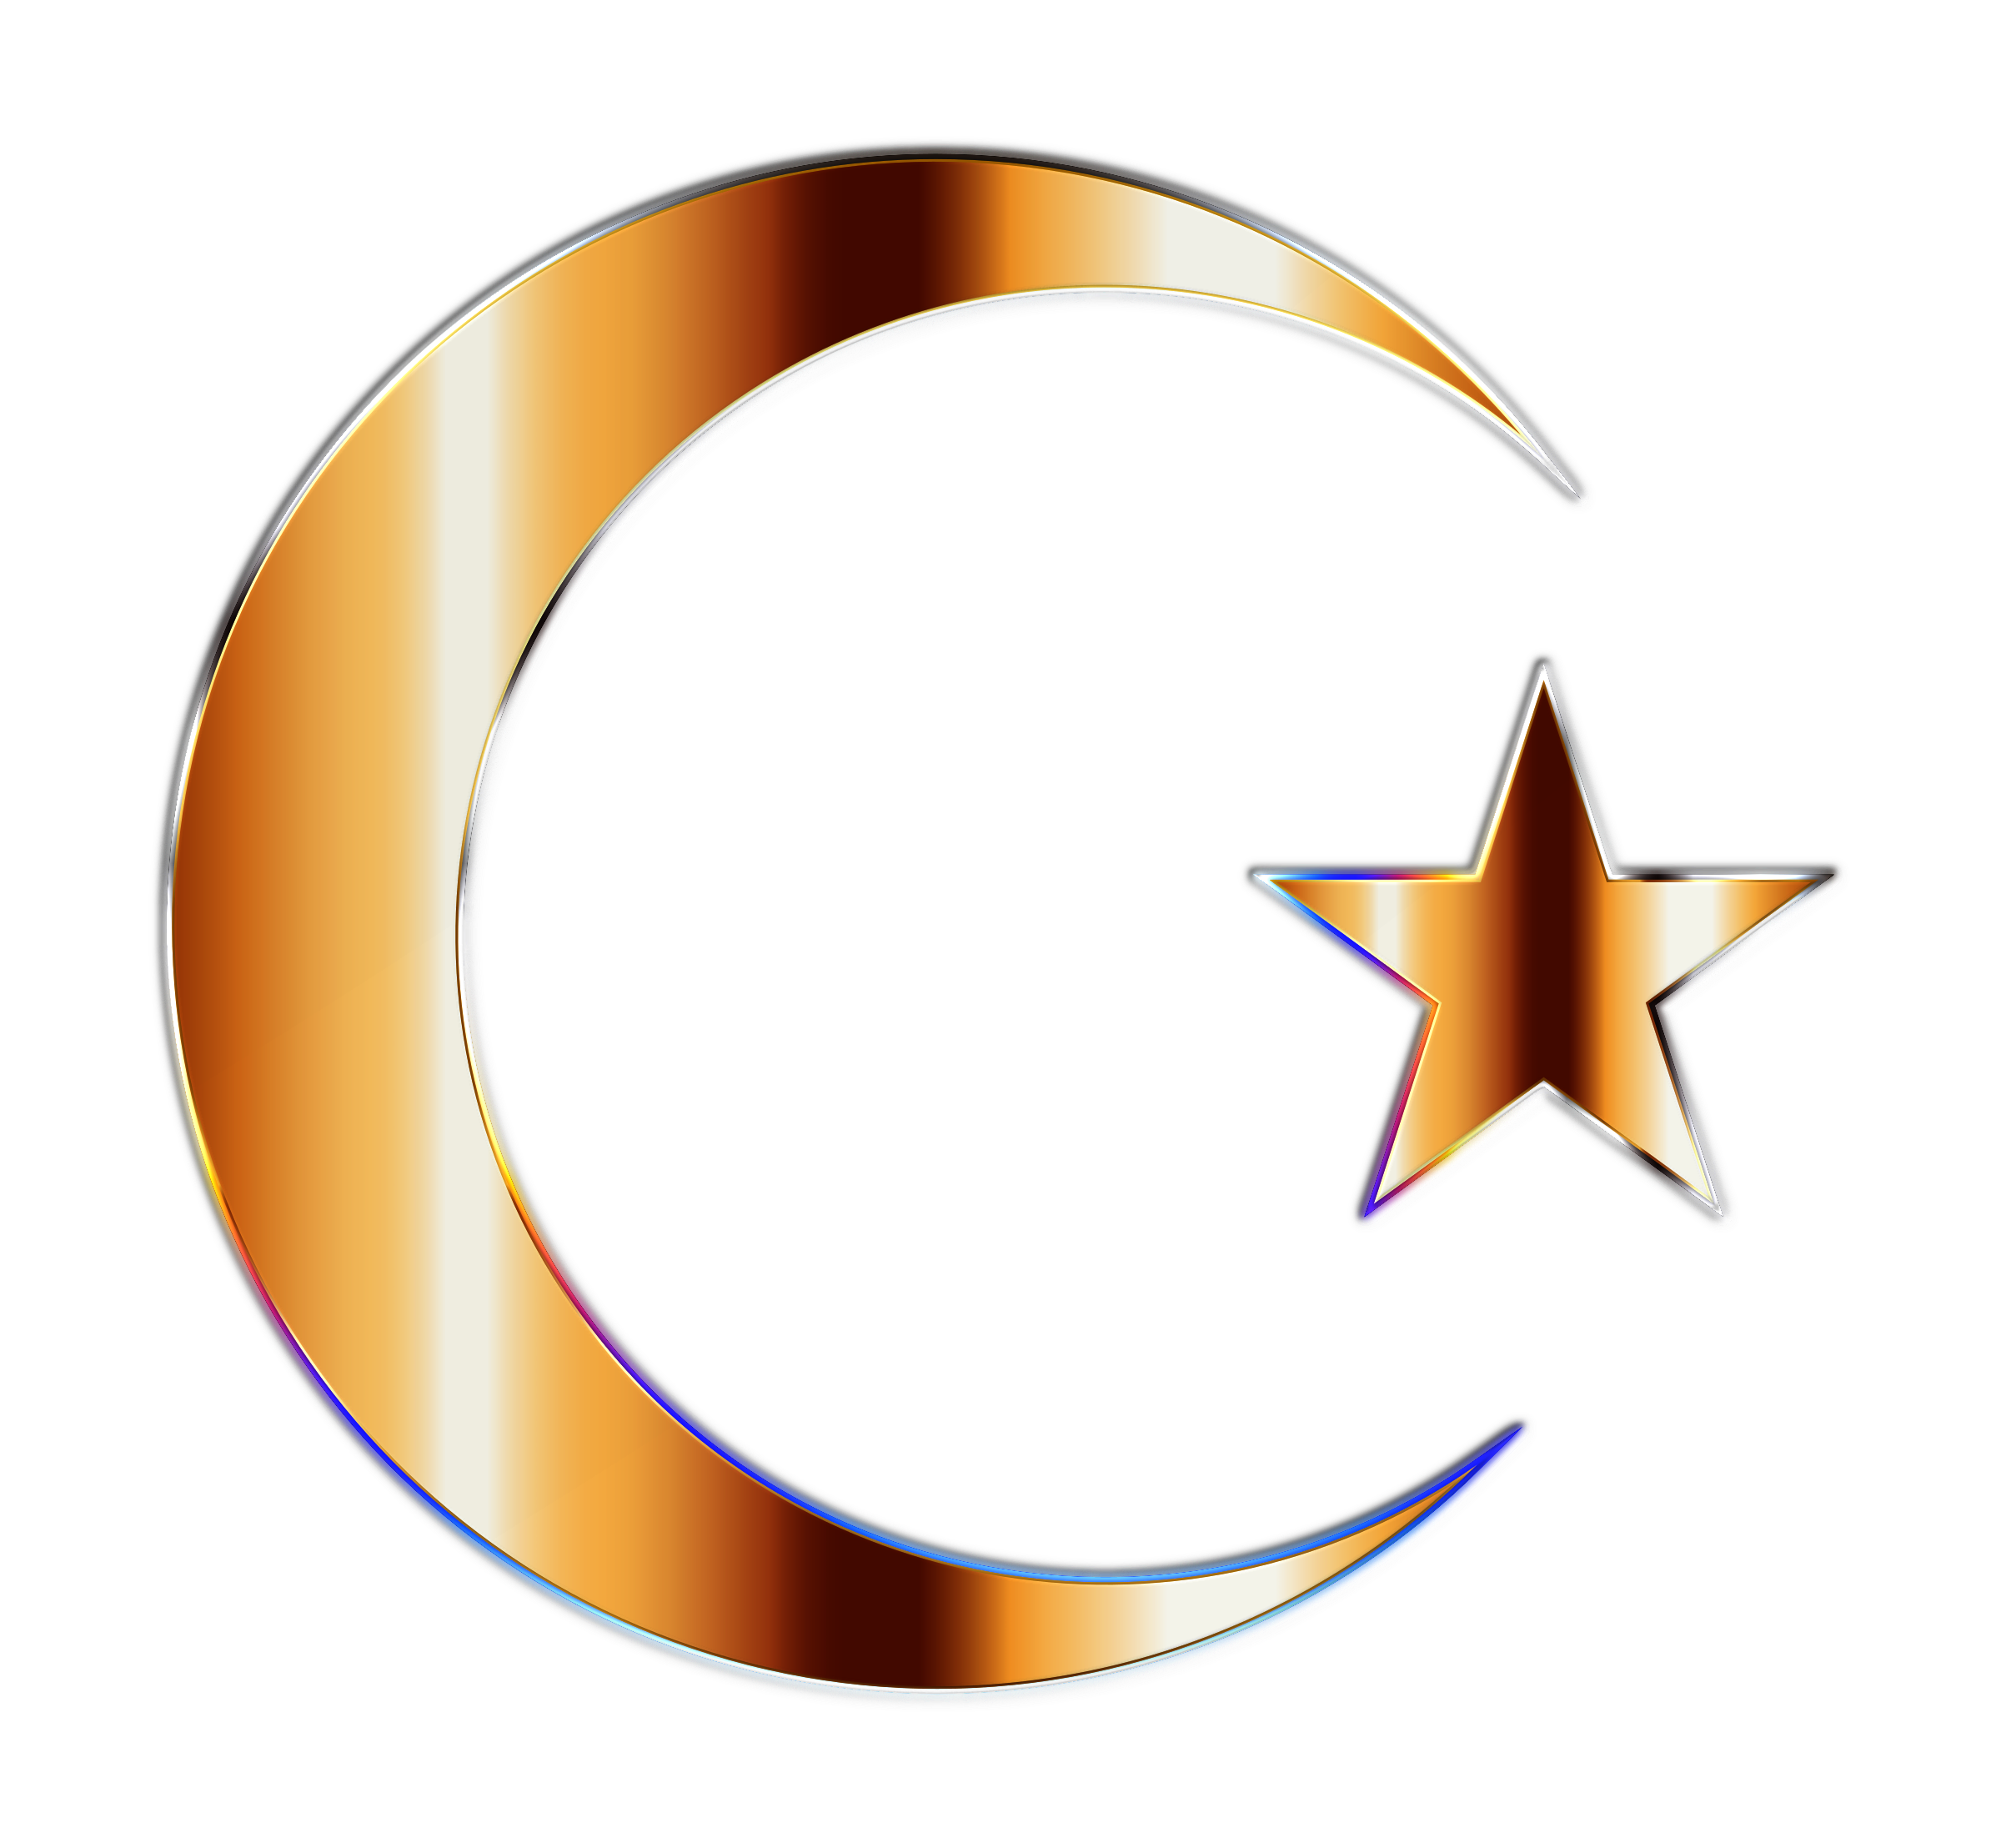 Clipart - Golden Crescent Moon And Star - Moon And Star PNG HD